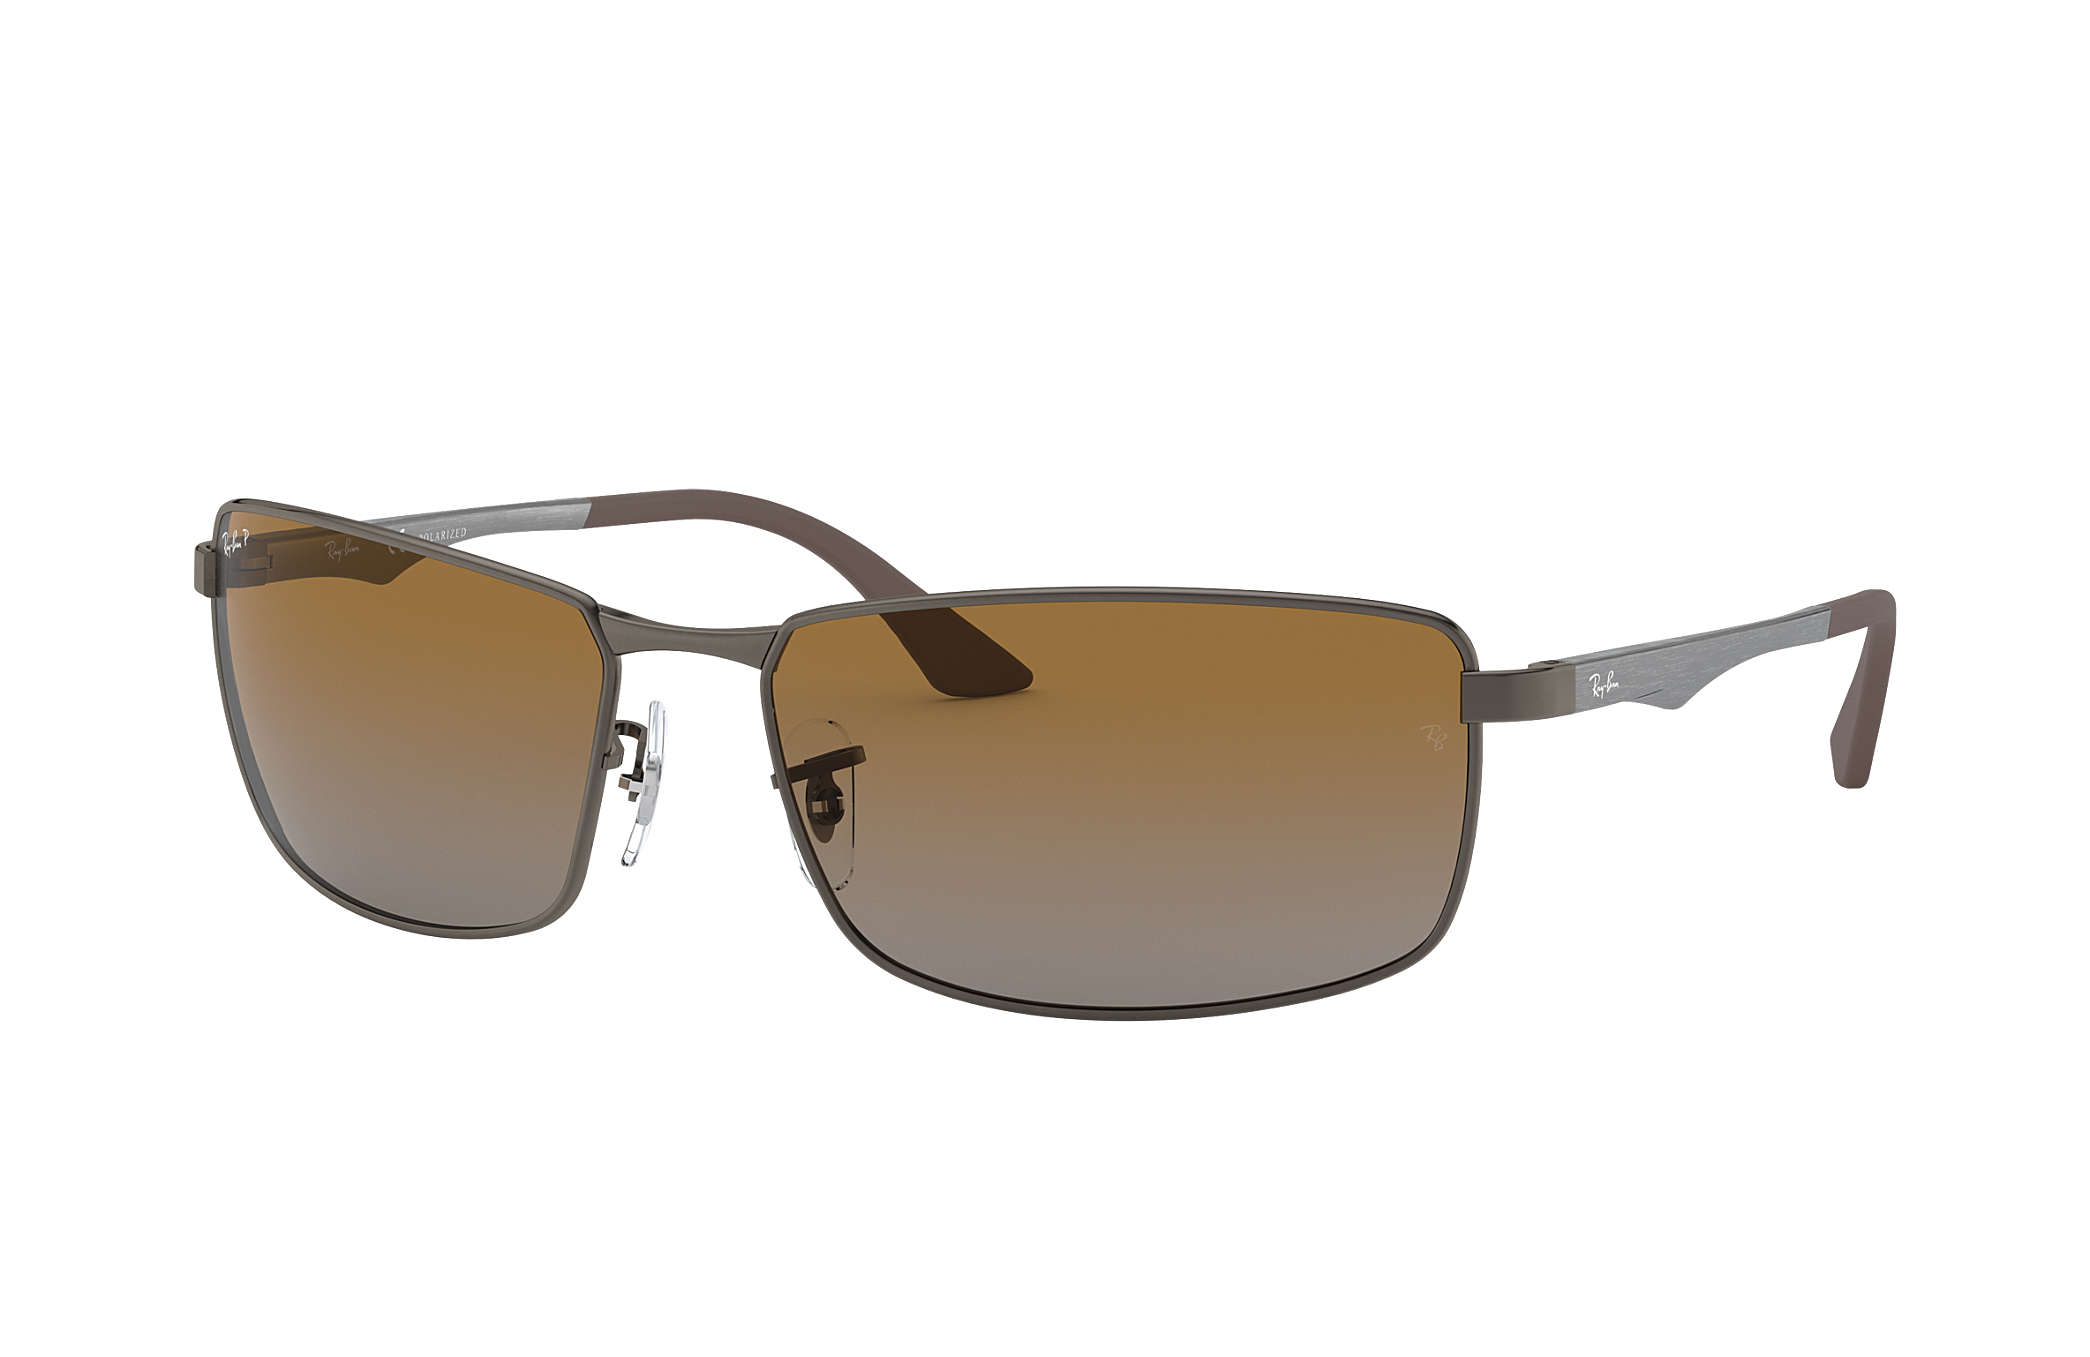 d26a1ee14a800 Ray-Ban RB3498 Gunmetal - Metal - Brown Polarized Lenses ...